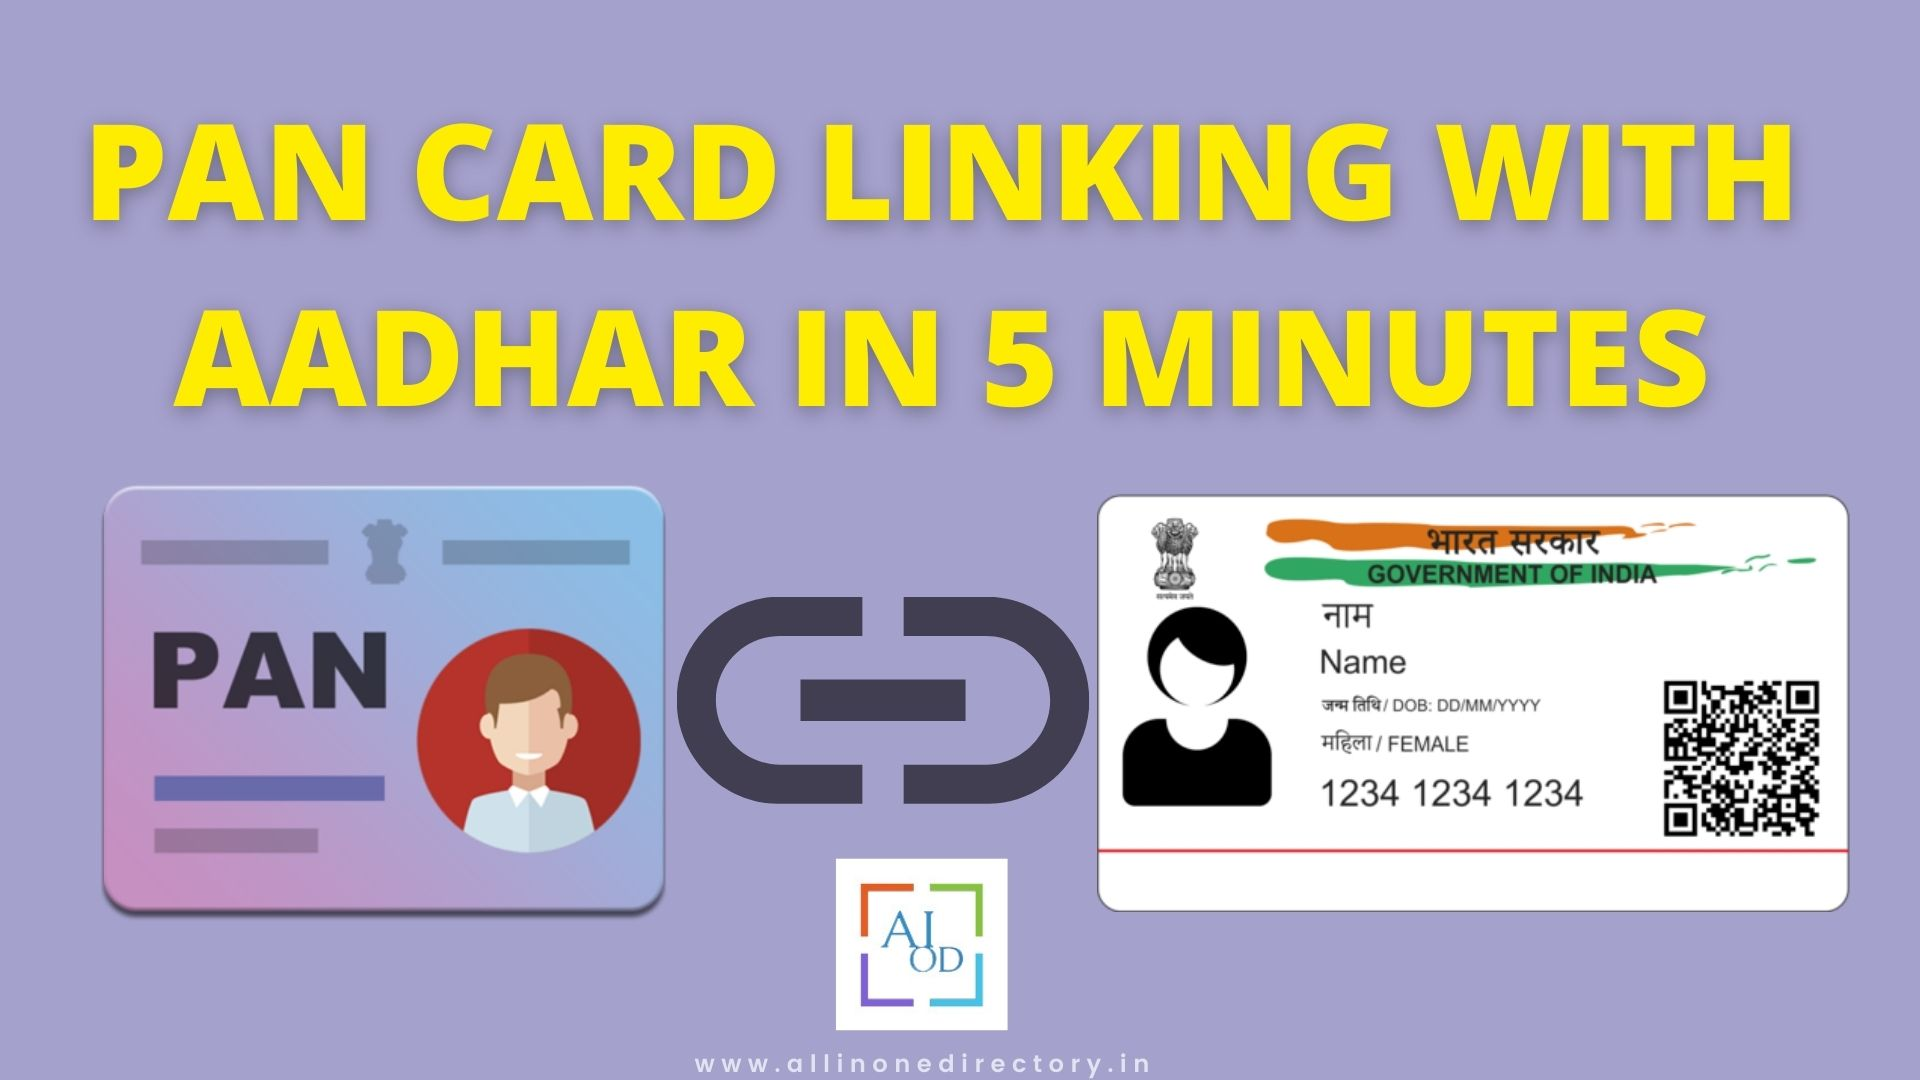 PAN CARD LINKING WITH AADHAR IN 5 MINUTES